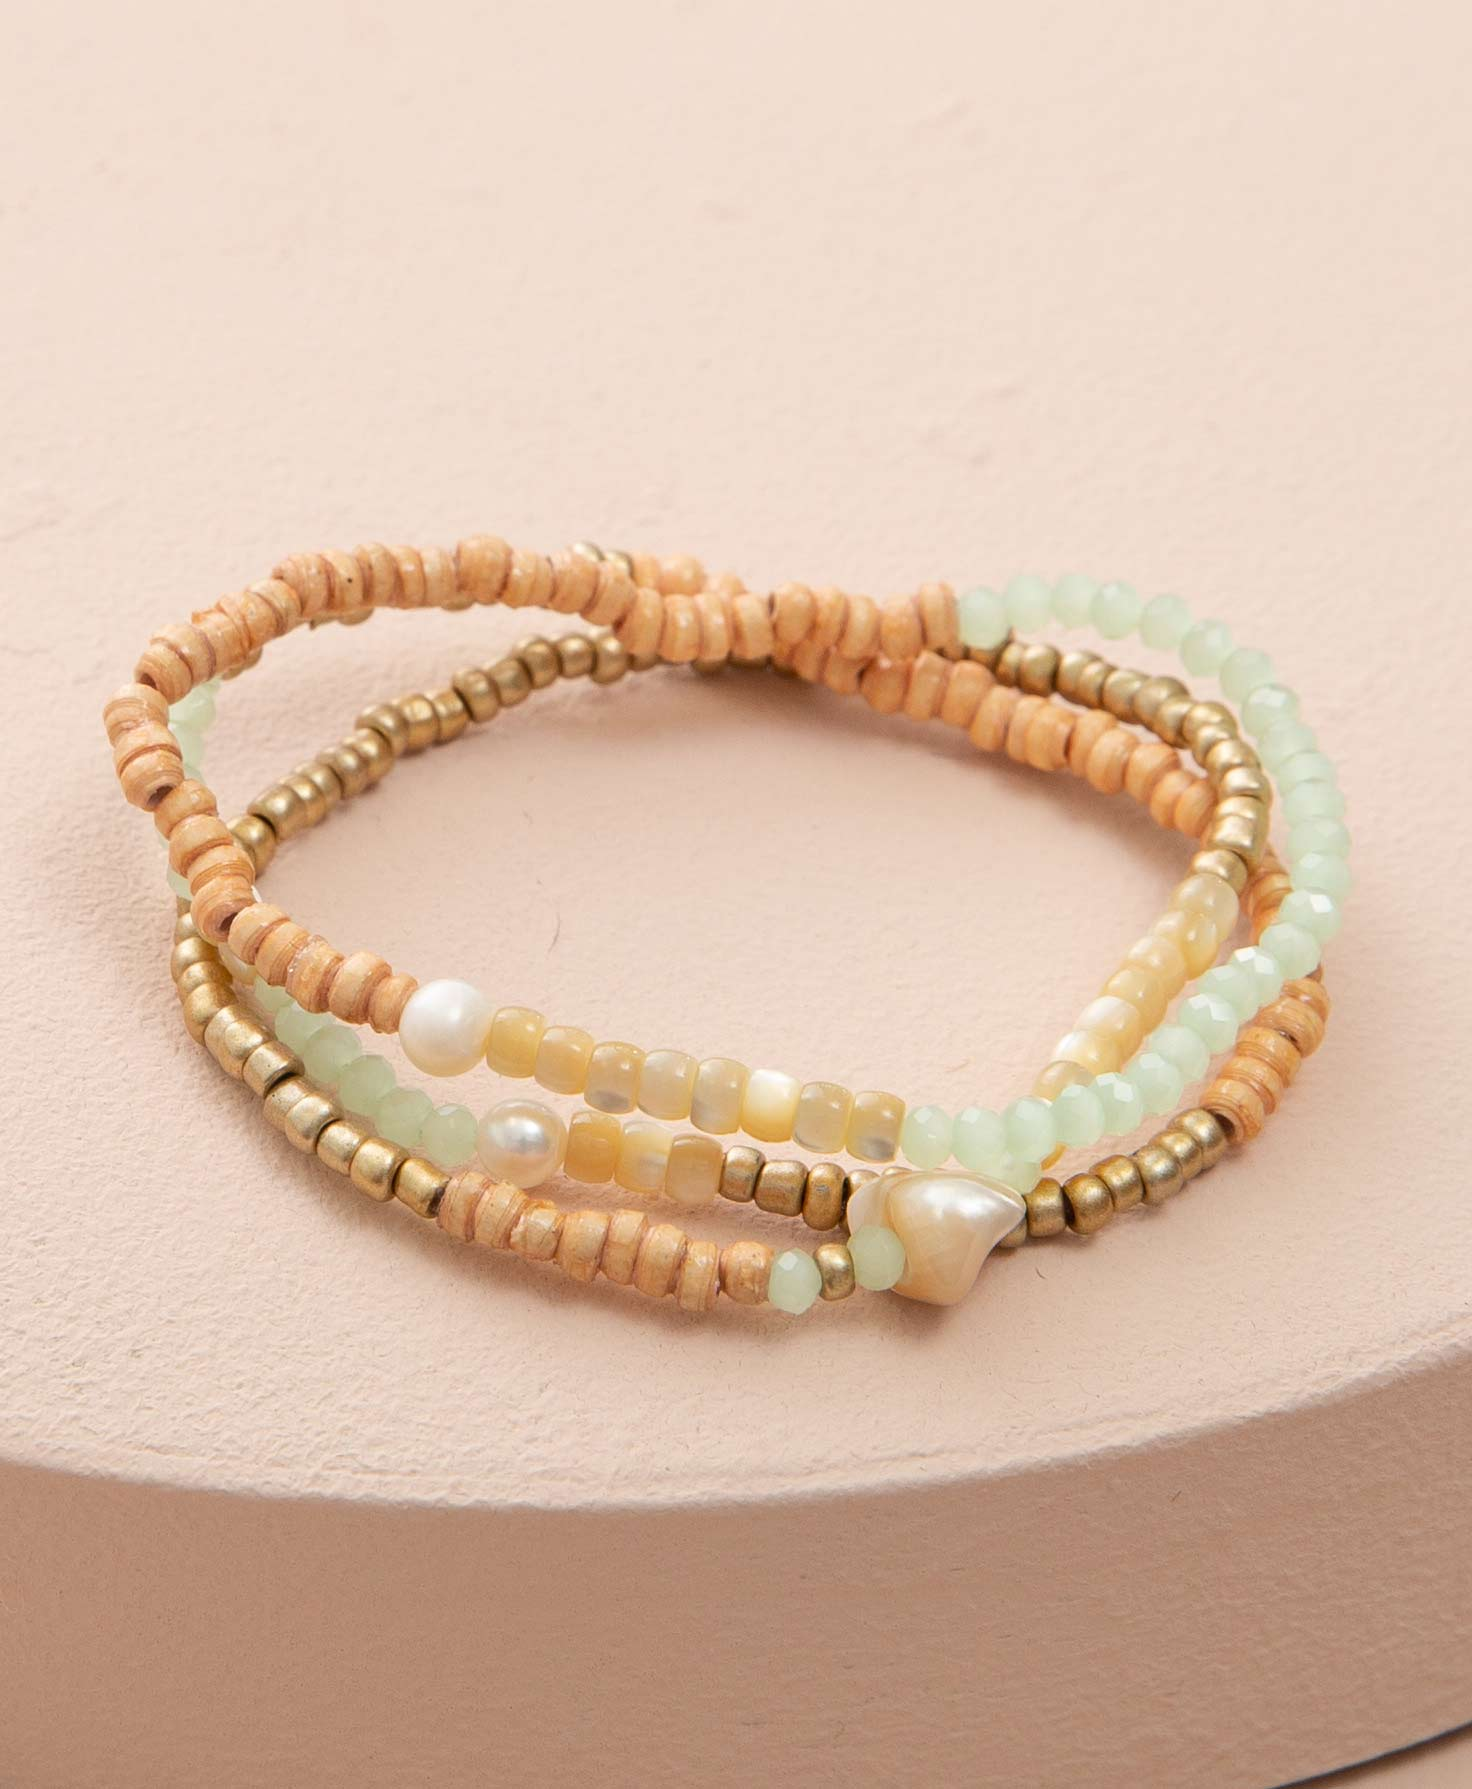 The three bracelets included in the By the Sea Bracelet set lay stacked on a cream-colored platform. The bracelets are made of stretchy elastic with small beads strung along them. While the bracelets vary slightly, they are relatively similar in appearance. The bracelets feature tan paper beads, cream-colored glass beads, mint-colored glass beads, brass-colored glass beads, and pearls.